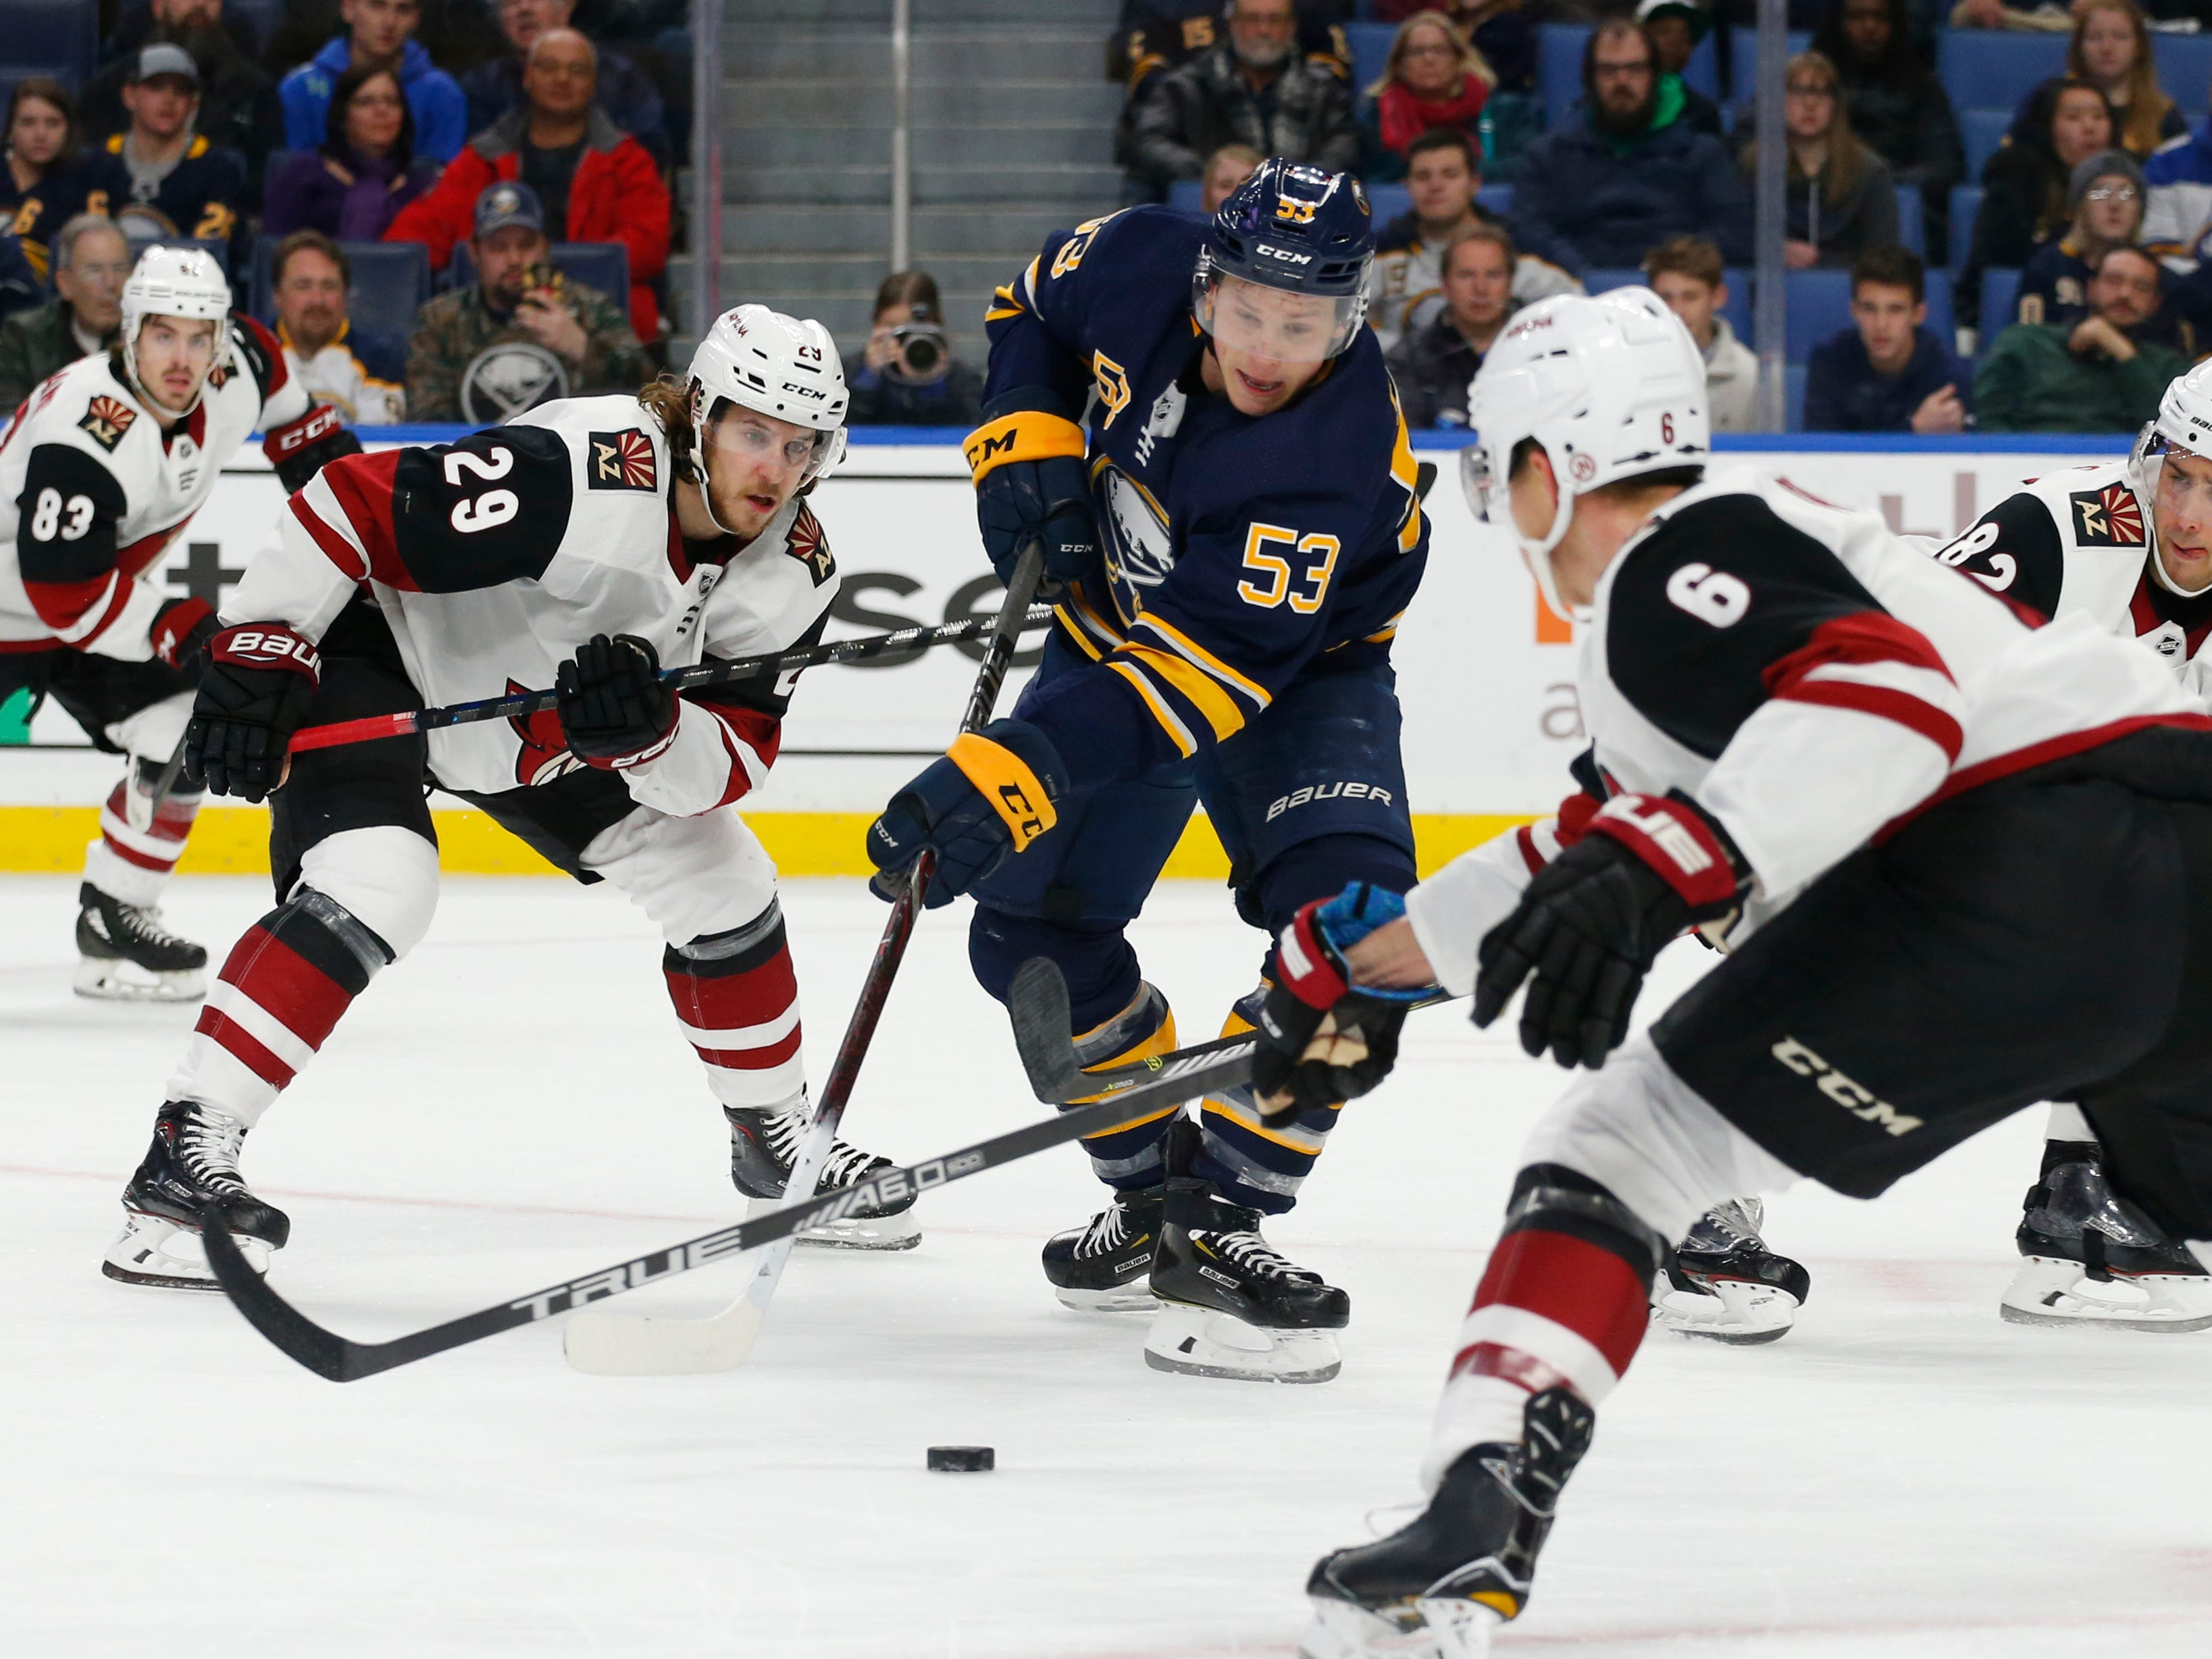 Buffalo Sabres forward Jeff Skinner (53) carries the puck past Arizona Coyotes forward Mario Kempe (29) during the first period of an NHL hockey game, Thursday, Dec. 13, 2018, in Buffalo N.Y. (AP Photo/Jeffrey T. Barnes)